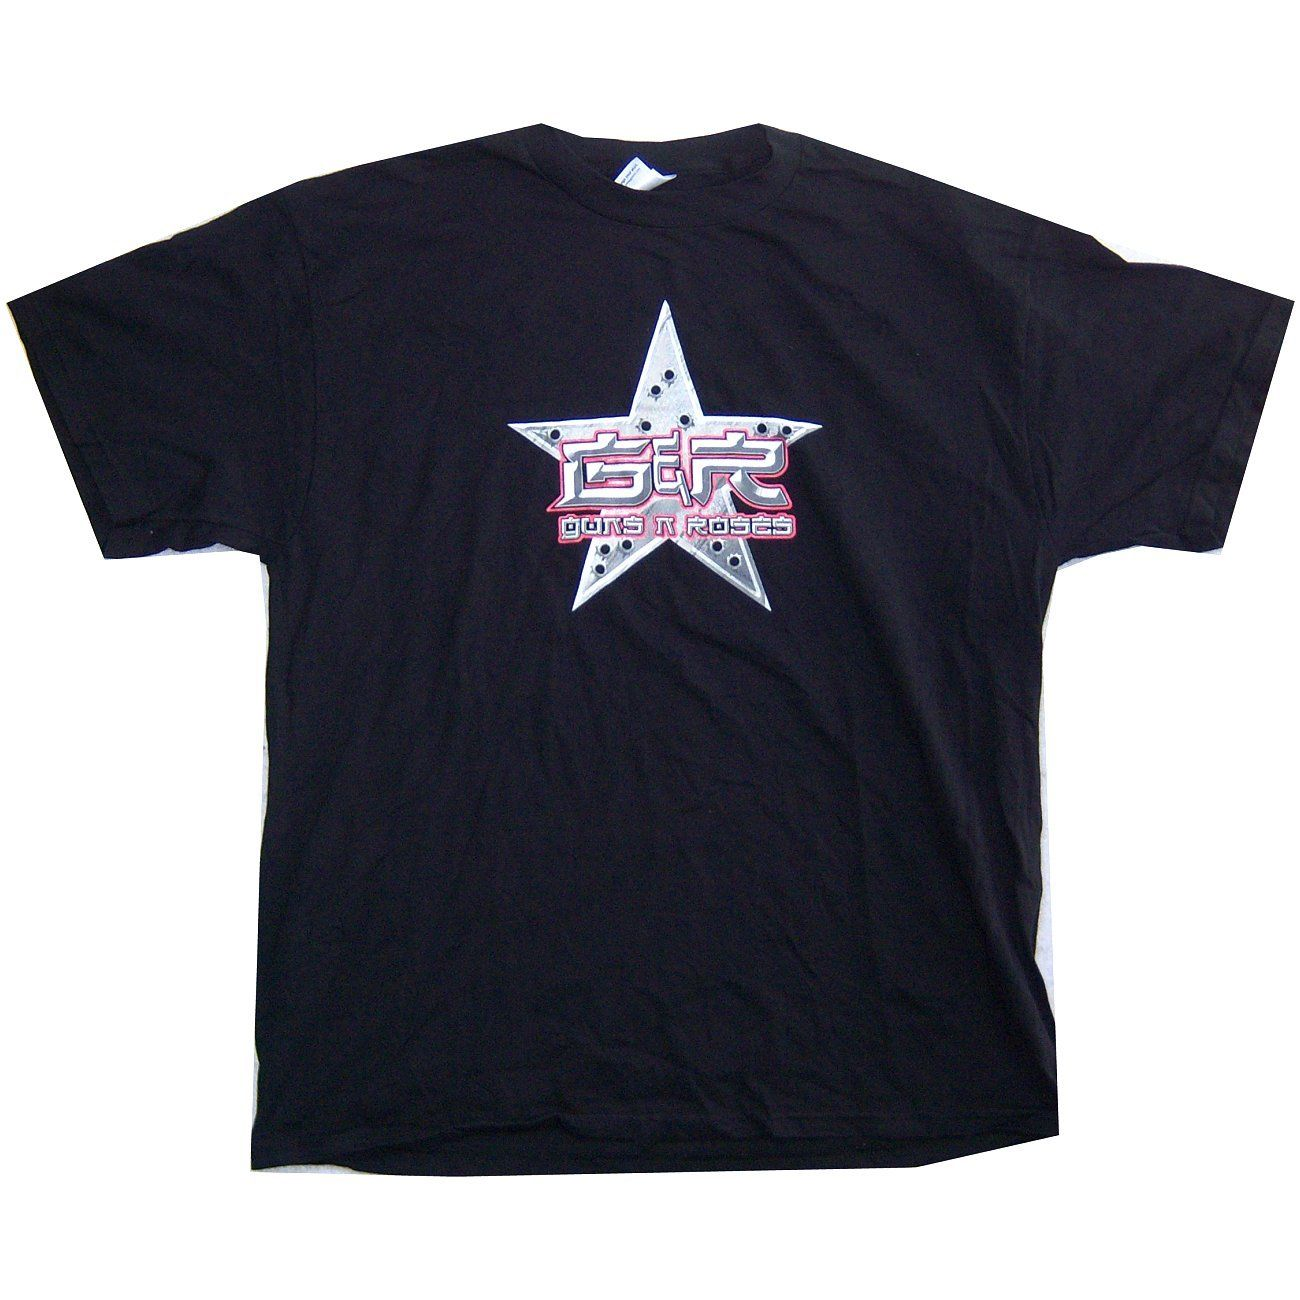 GUNS N ROSES BULLET HOLES STAR LOGO BLACK T-SHIRT XL X-LARGE NEW